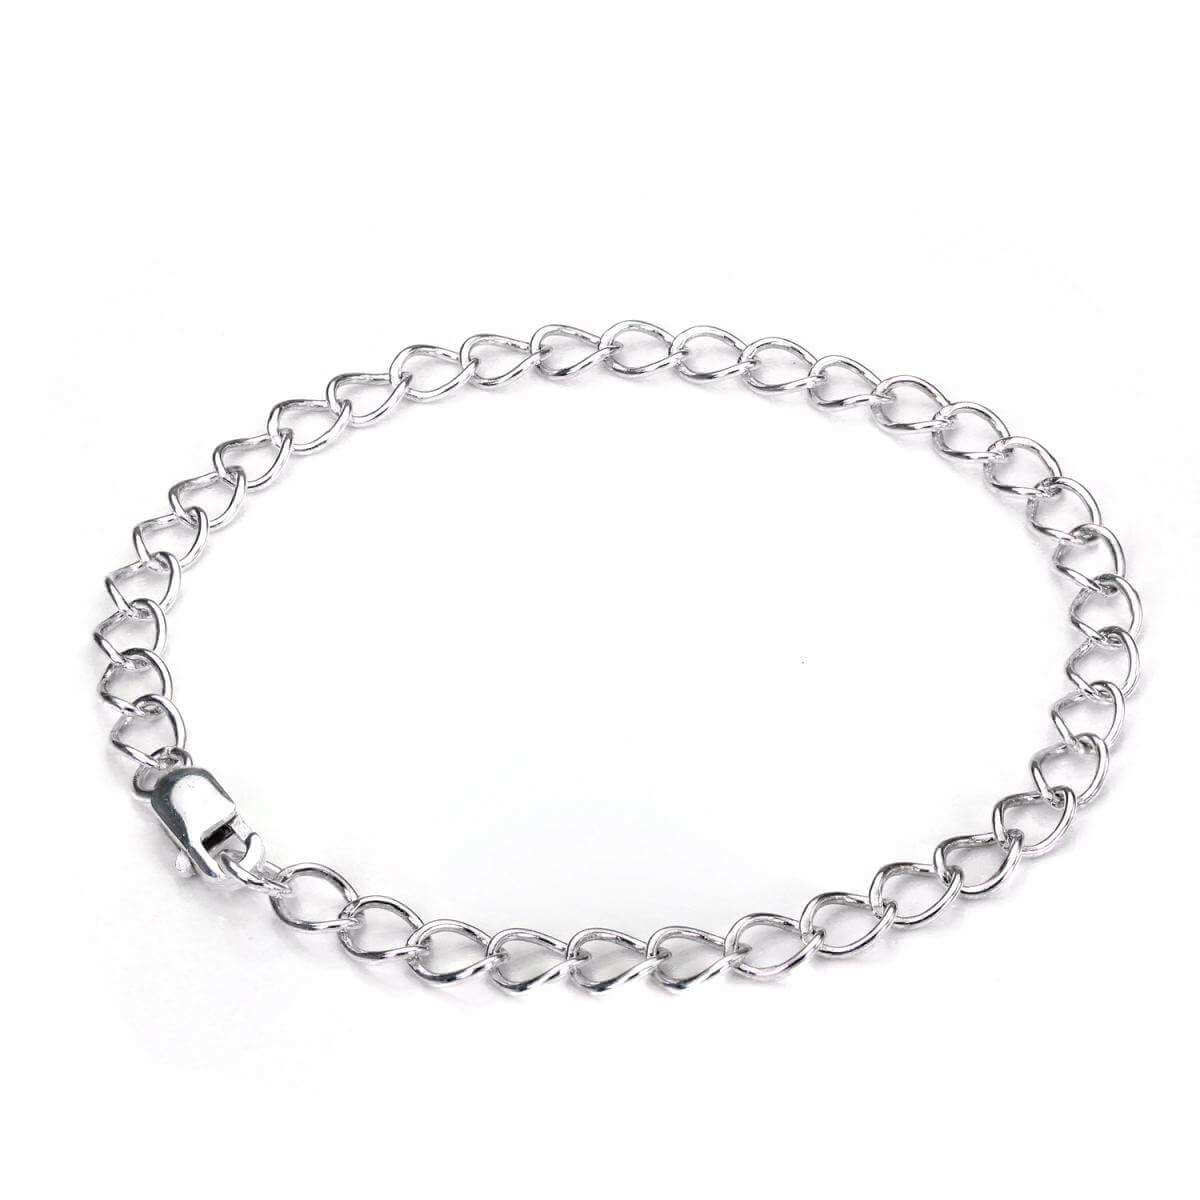 Sterling Silver Light Curb Chain Charm Bracelet